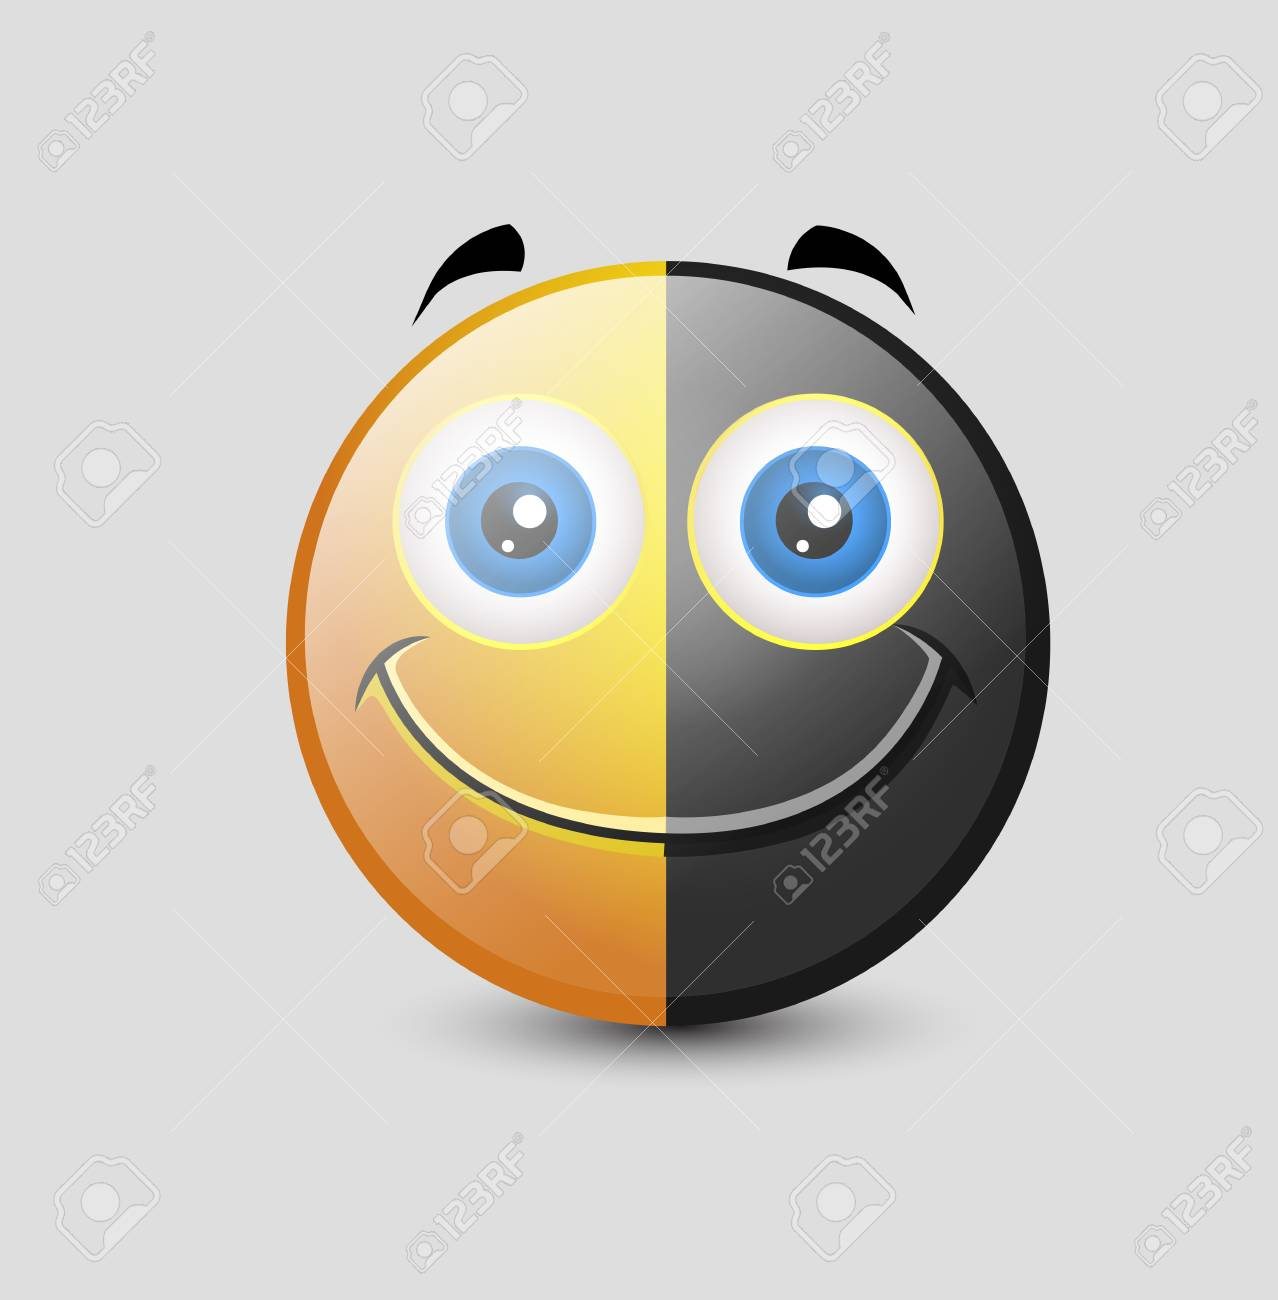 Yin Yang Comic Emoji Smiley Emoticon Royalty Free Cliparts Vectors And Stock Illustration Image 52150828